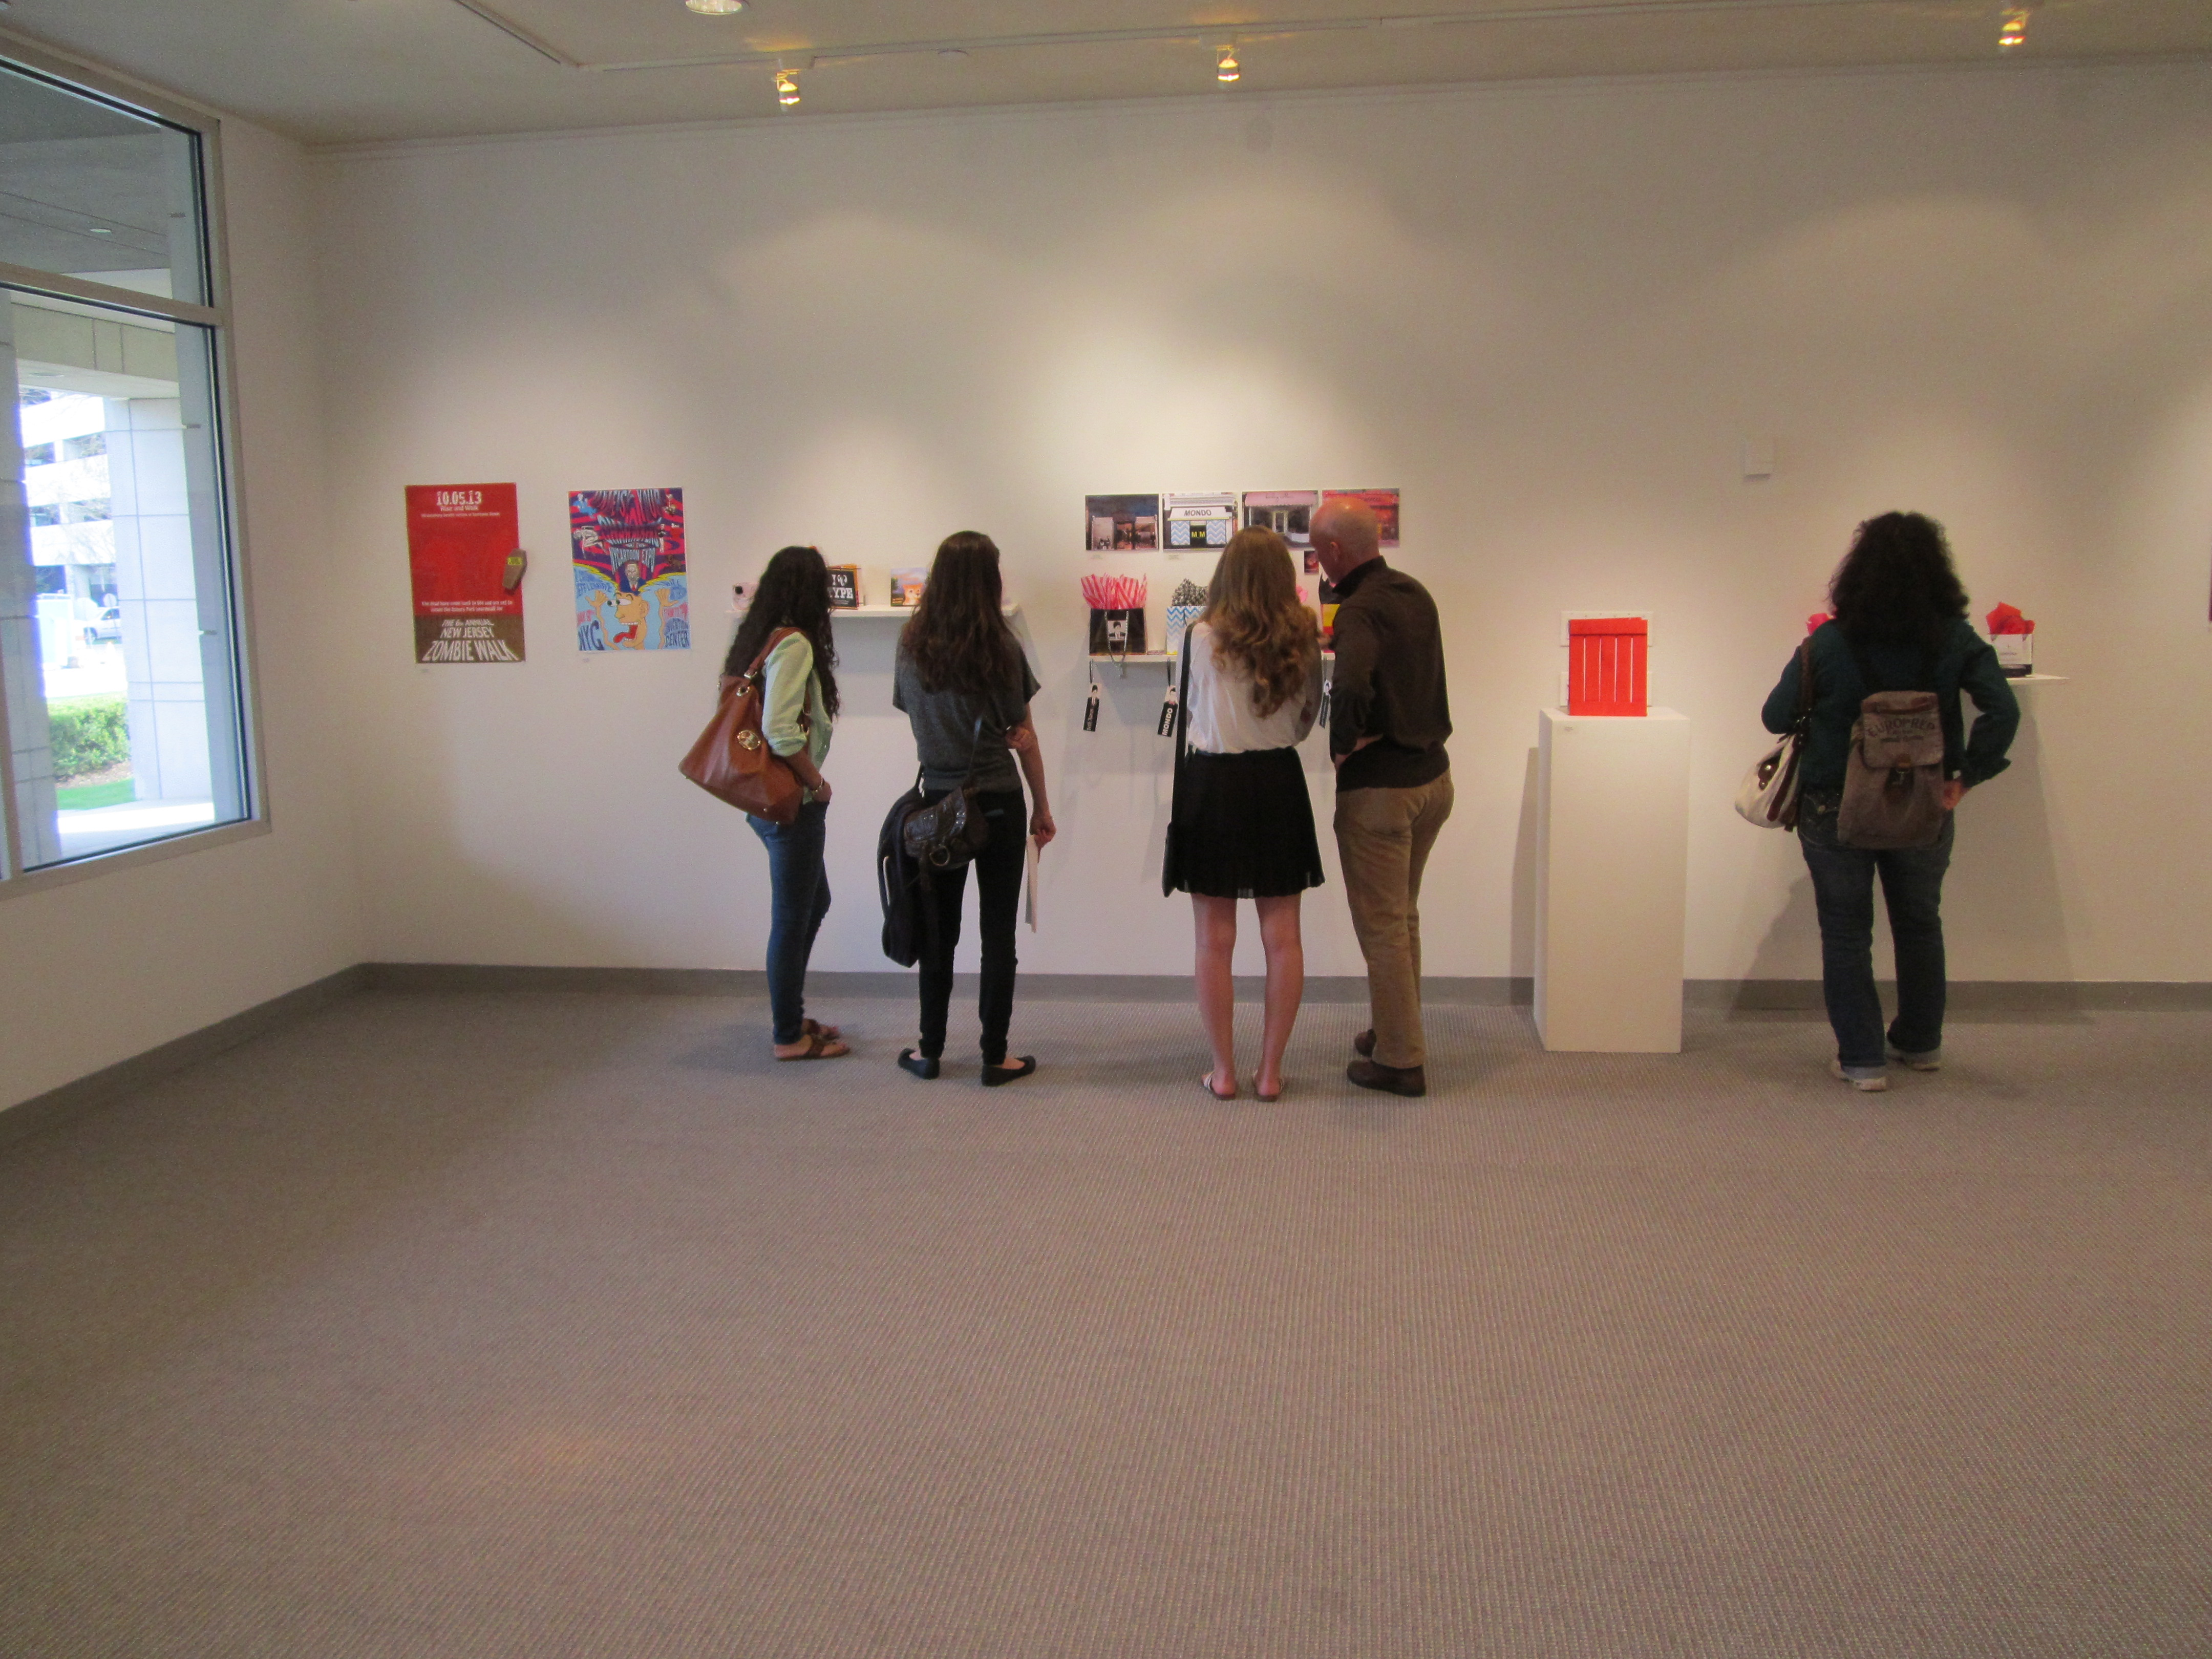 Student Exhibition Image: people looking at artwork at a past student show